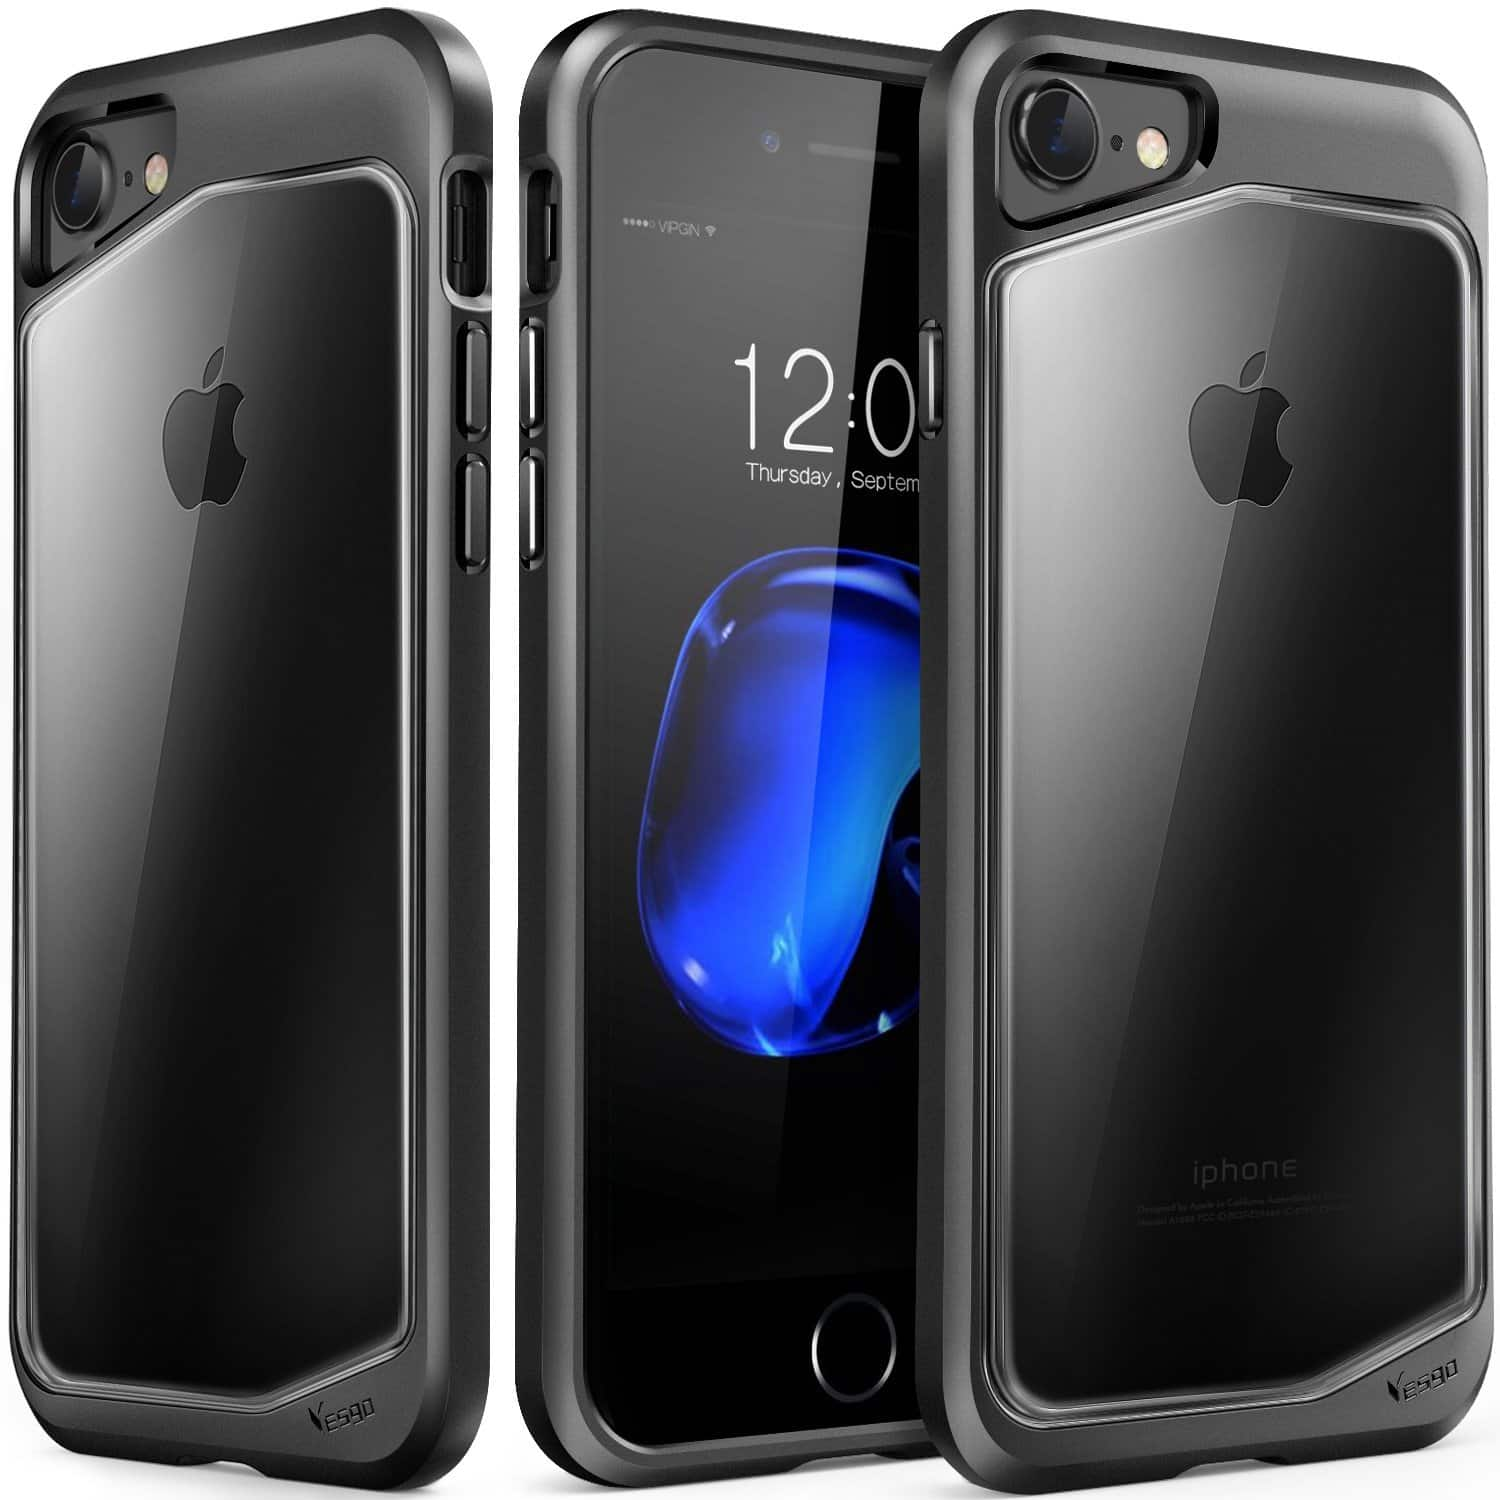 iPhone Case--Transparent Back Scratch Resistant Protective Cover for iPhone 7/7 Plus starting from $2.99 + Free Ship from USA